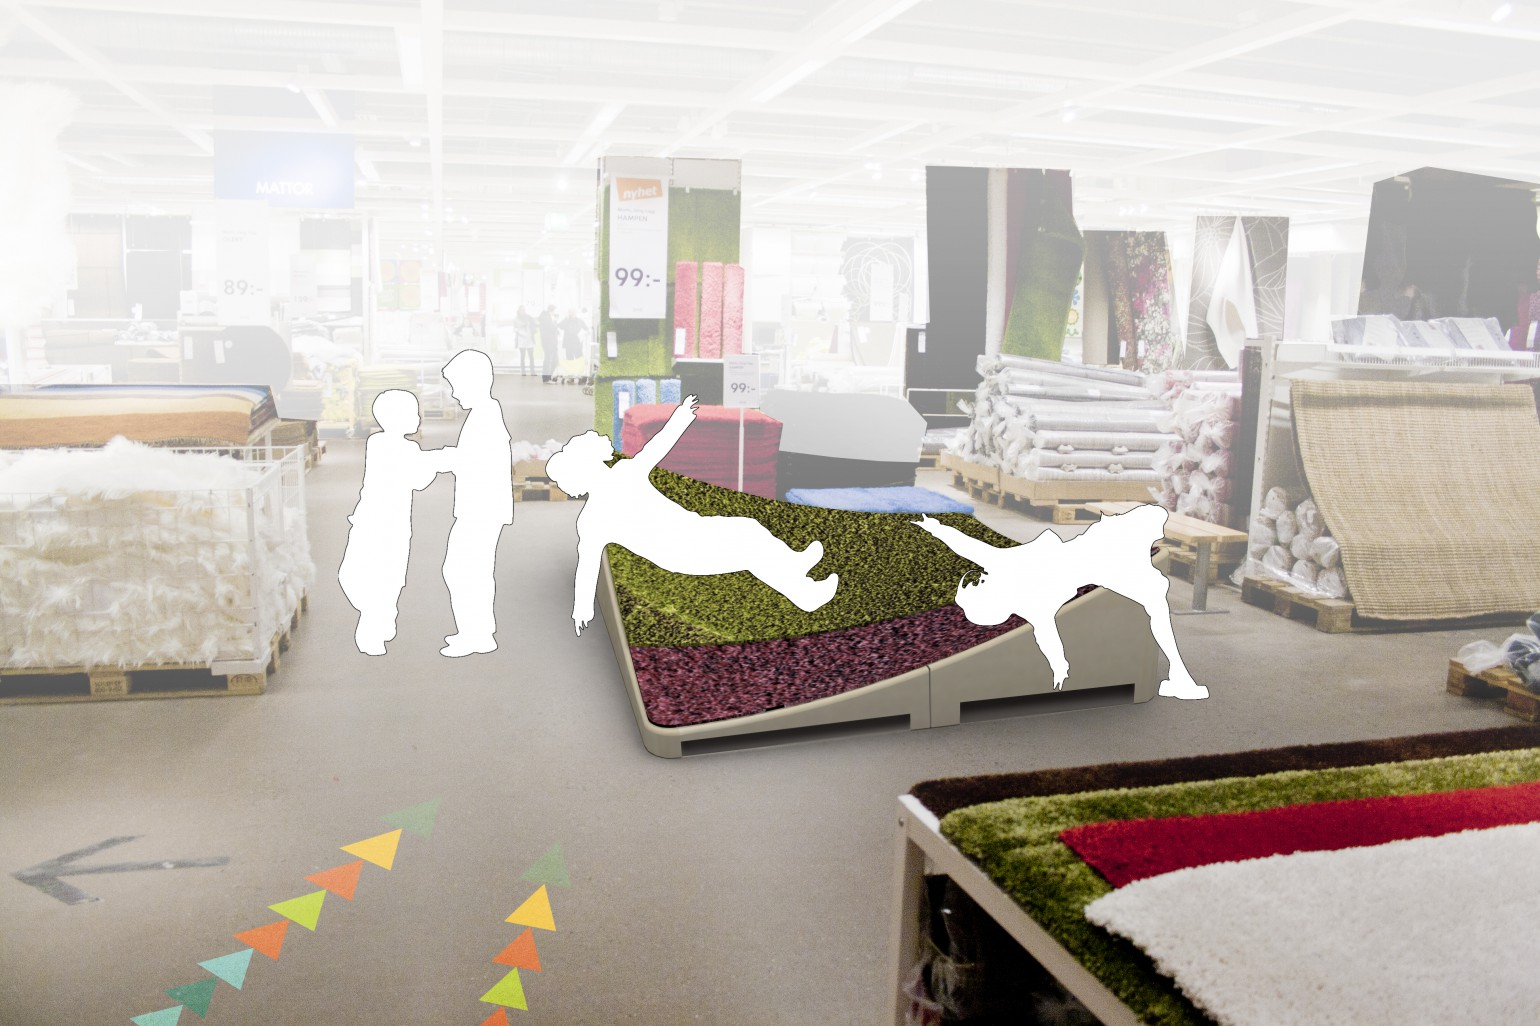 Play_in_a_retail_surrounding_master_degree_project_IKEA_Child_Culture_Design_HDK_Strömqvist_5